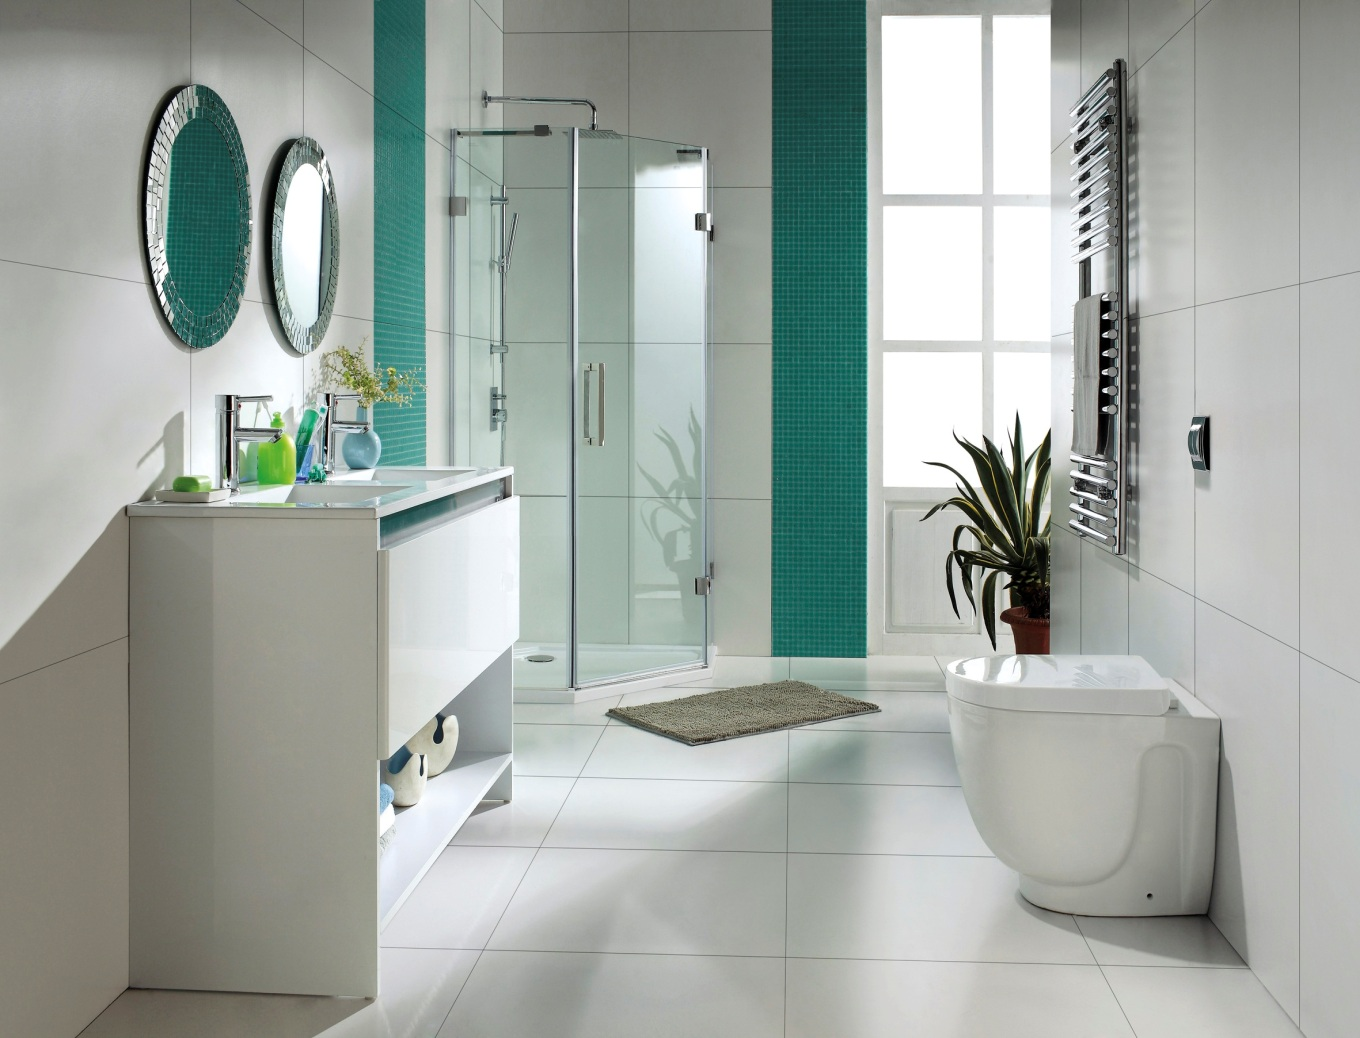 White bathroom decor ideas decor ideasdecor ideas Bathroom decor ideas